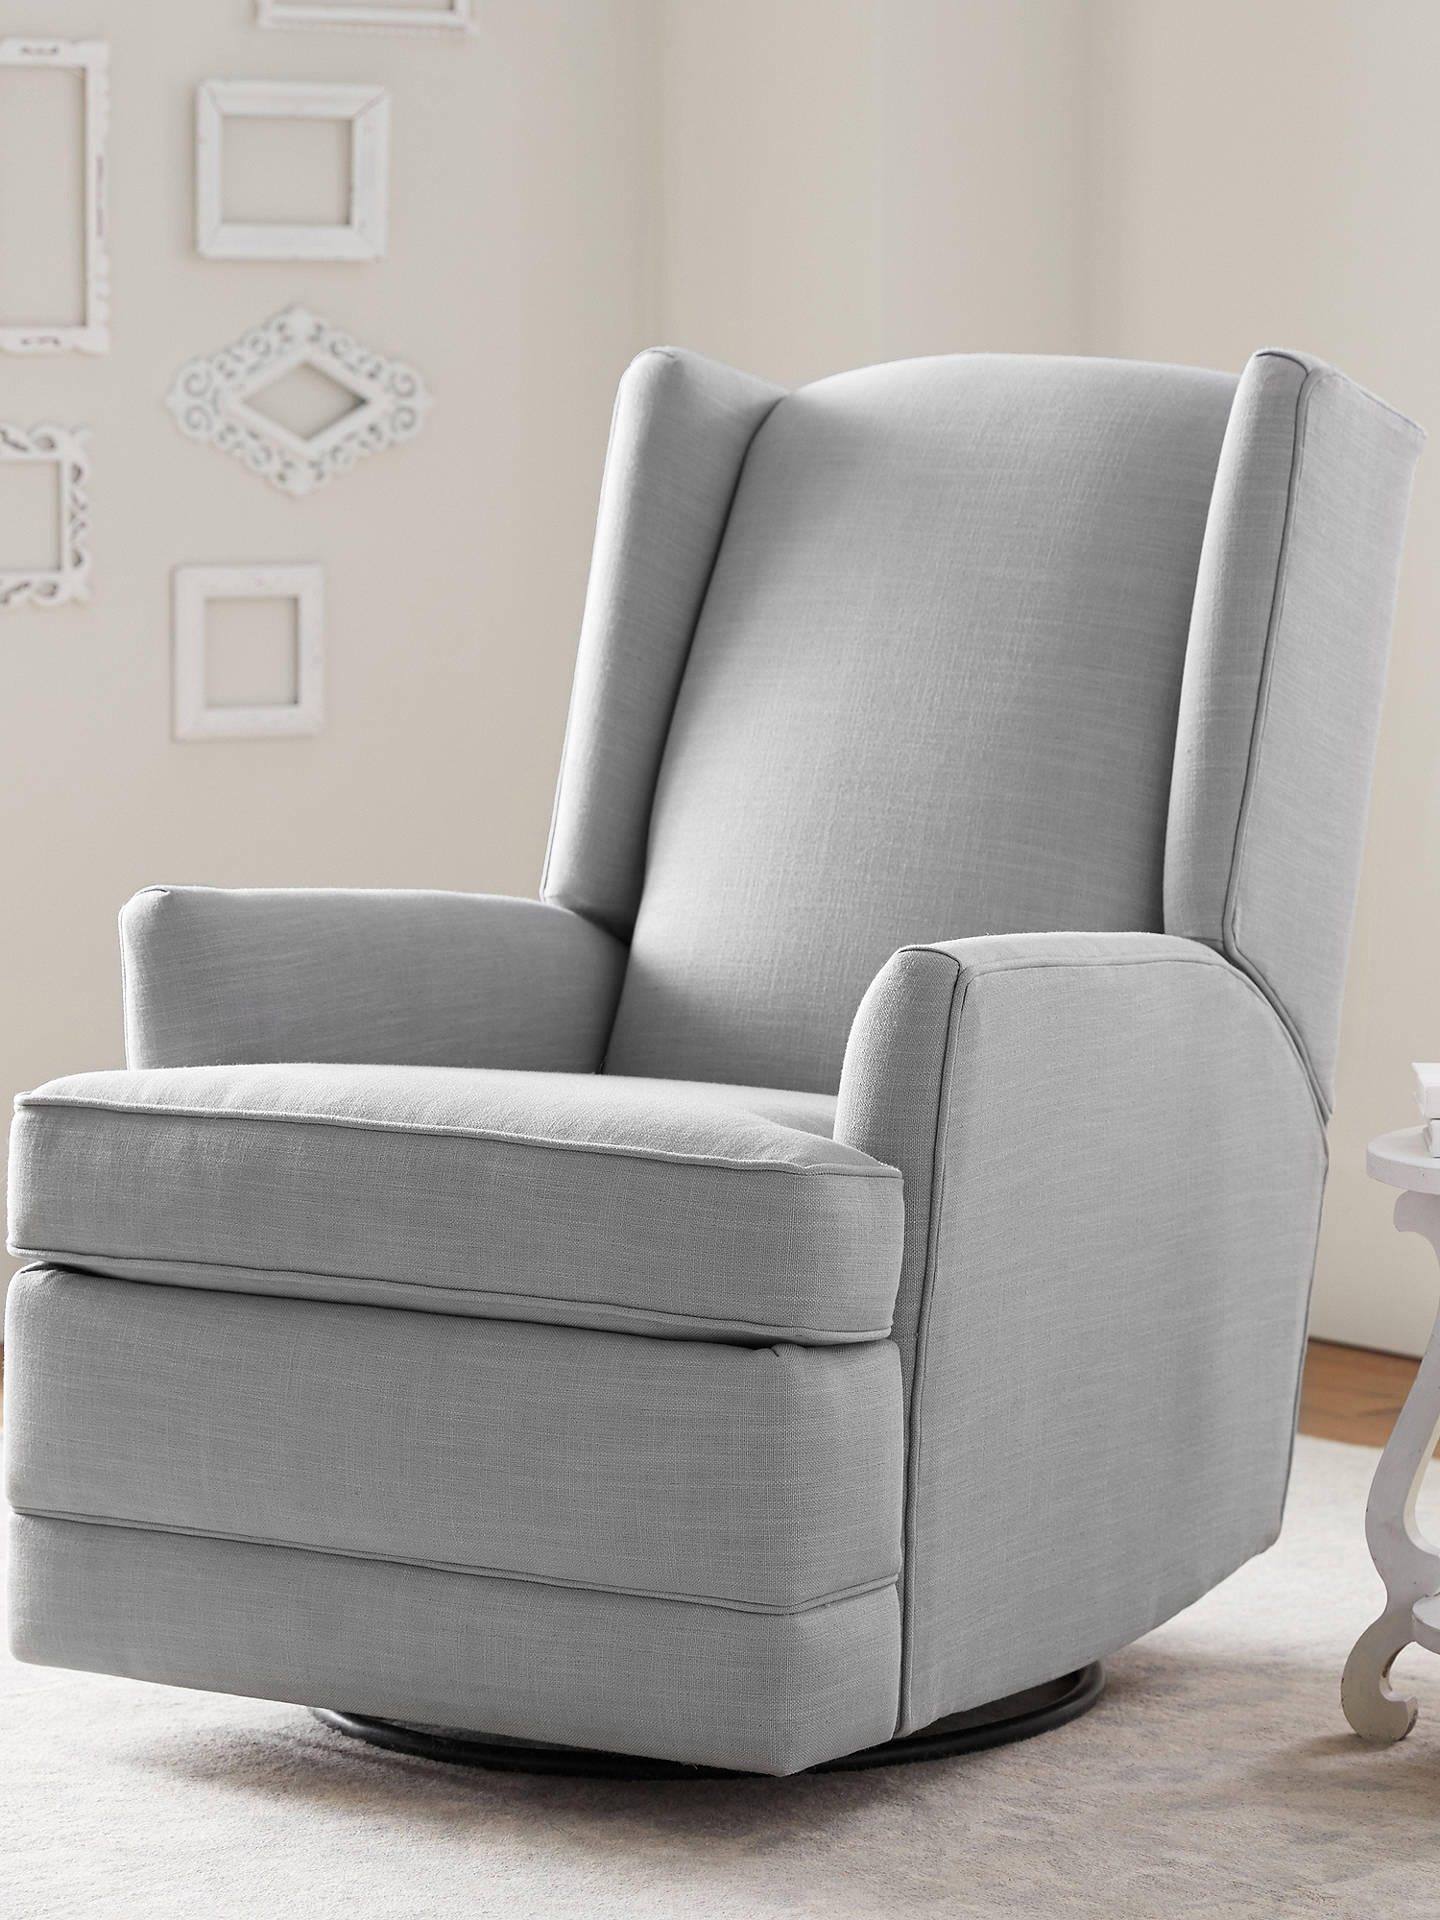 Cool Pottery Barn Kids Modern Wingback Reclining Nursing Chair Ash Lamtechconsult Wood Chair Design Ideas Lamtechconsultcom